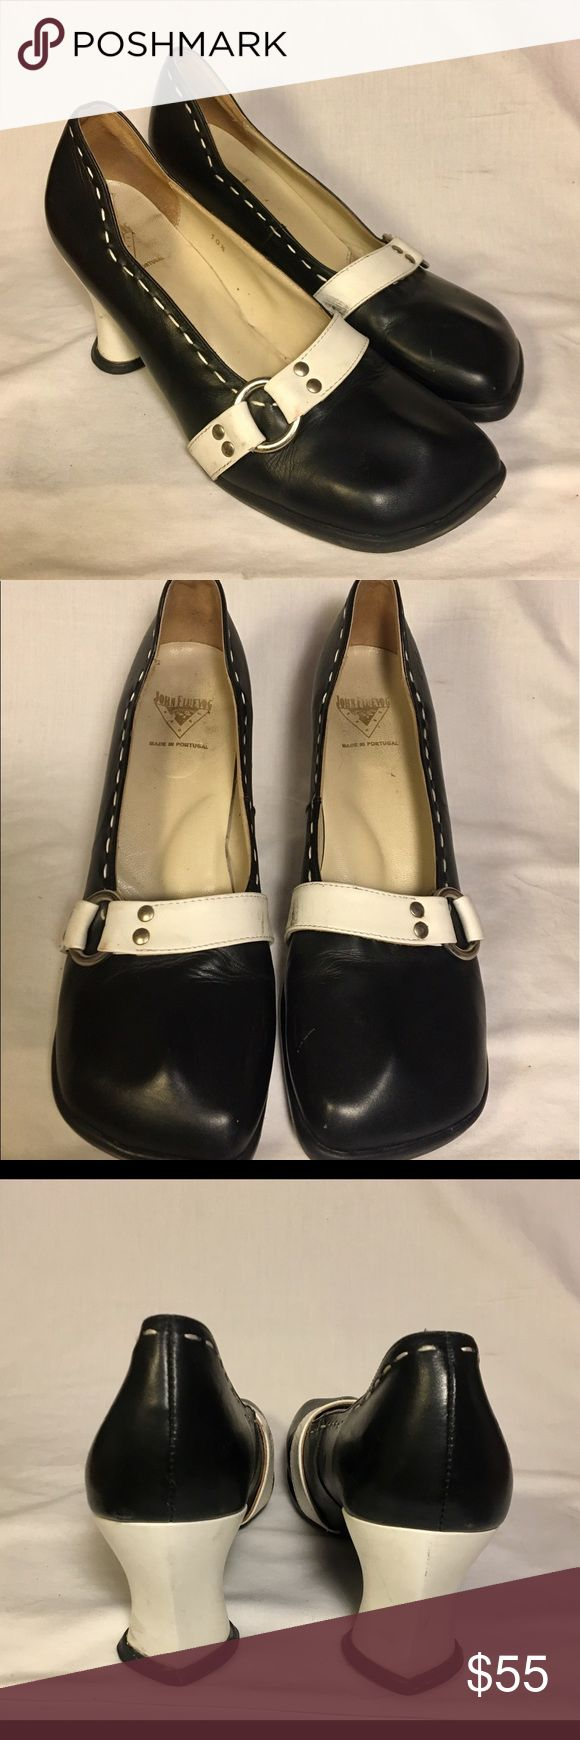 John Fluevog heels 👠 John Fluevog heels white and black. Cute heels with lots of life left in them. Beautiful leather. Made in Portugal 🇵🇹 Soles have scrapes / cute / John Fluevog / John Fluevog Shoes Heels